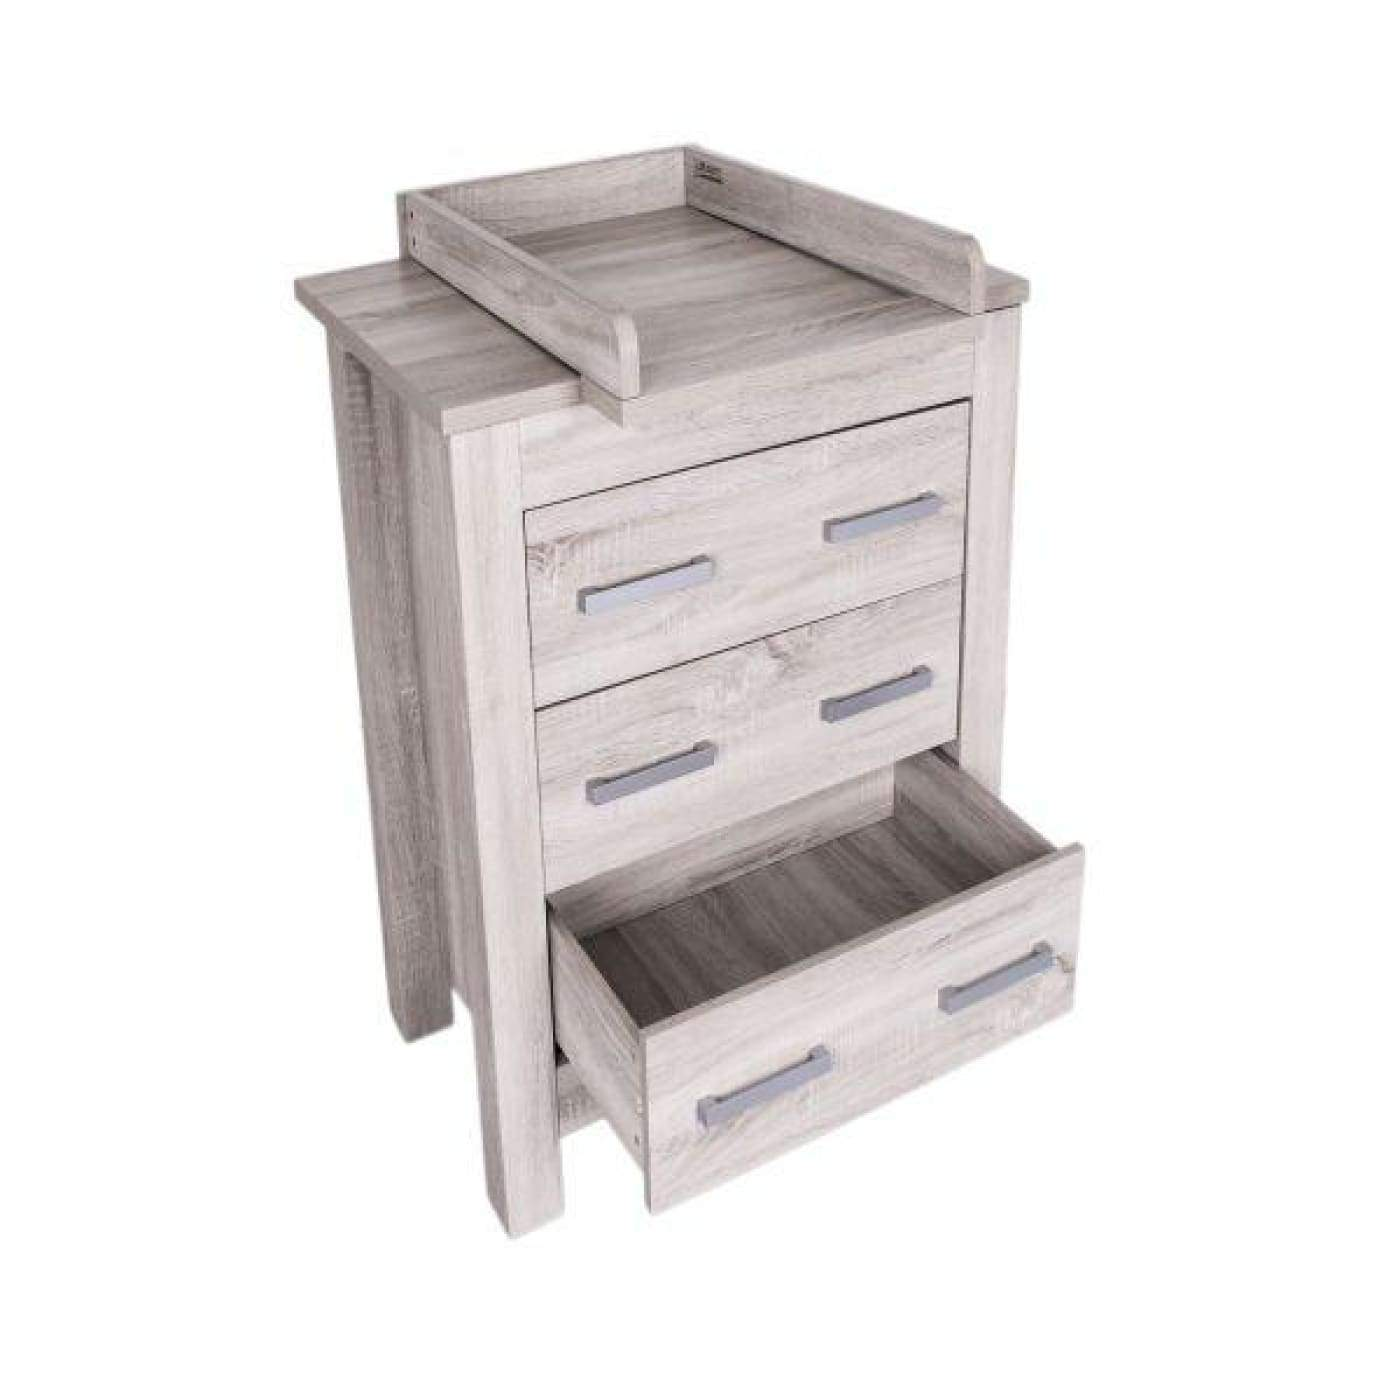 Love N Care Bordeaux Chest - Ash - Available June - Ash - NURSERY & BEDTIME - CHESTS/DRESSERS/TALLBOYS